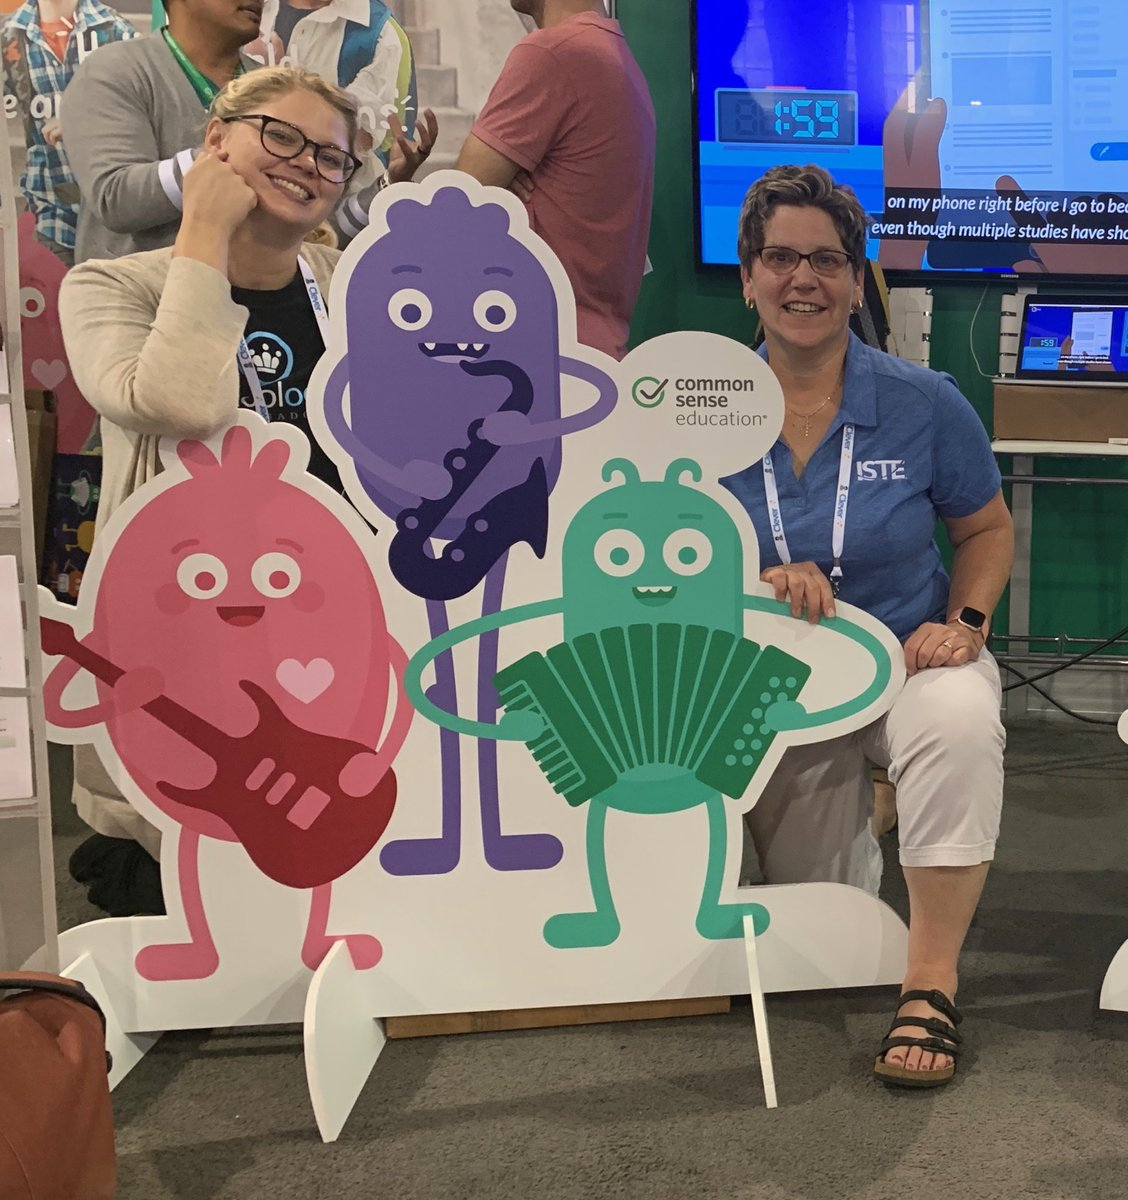 #iste2019 #iste19 Hanging with our friends @CommonSenseEd